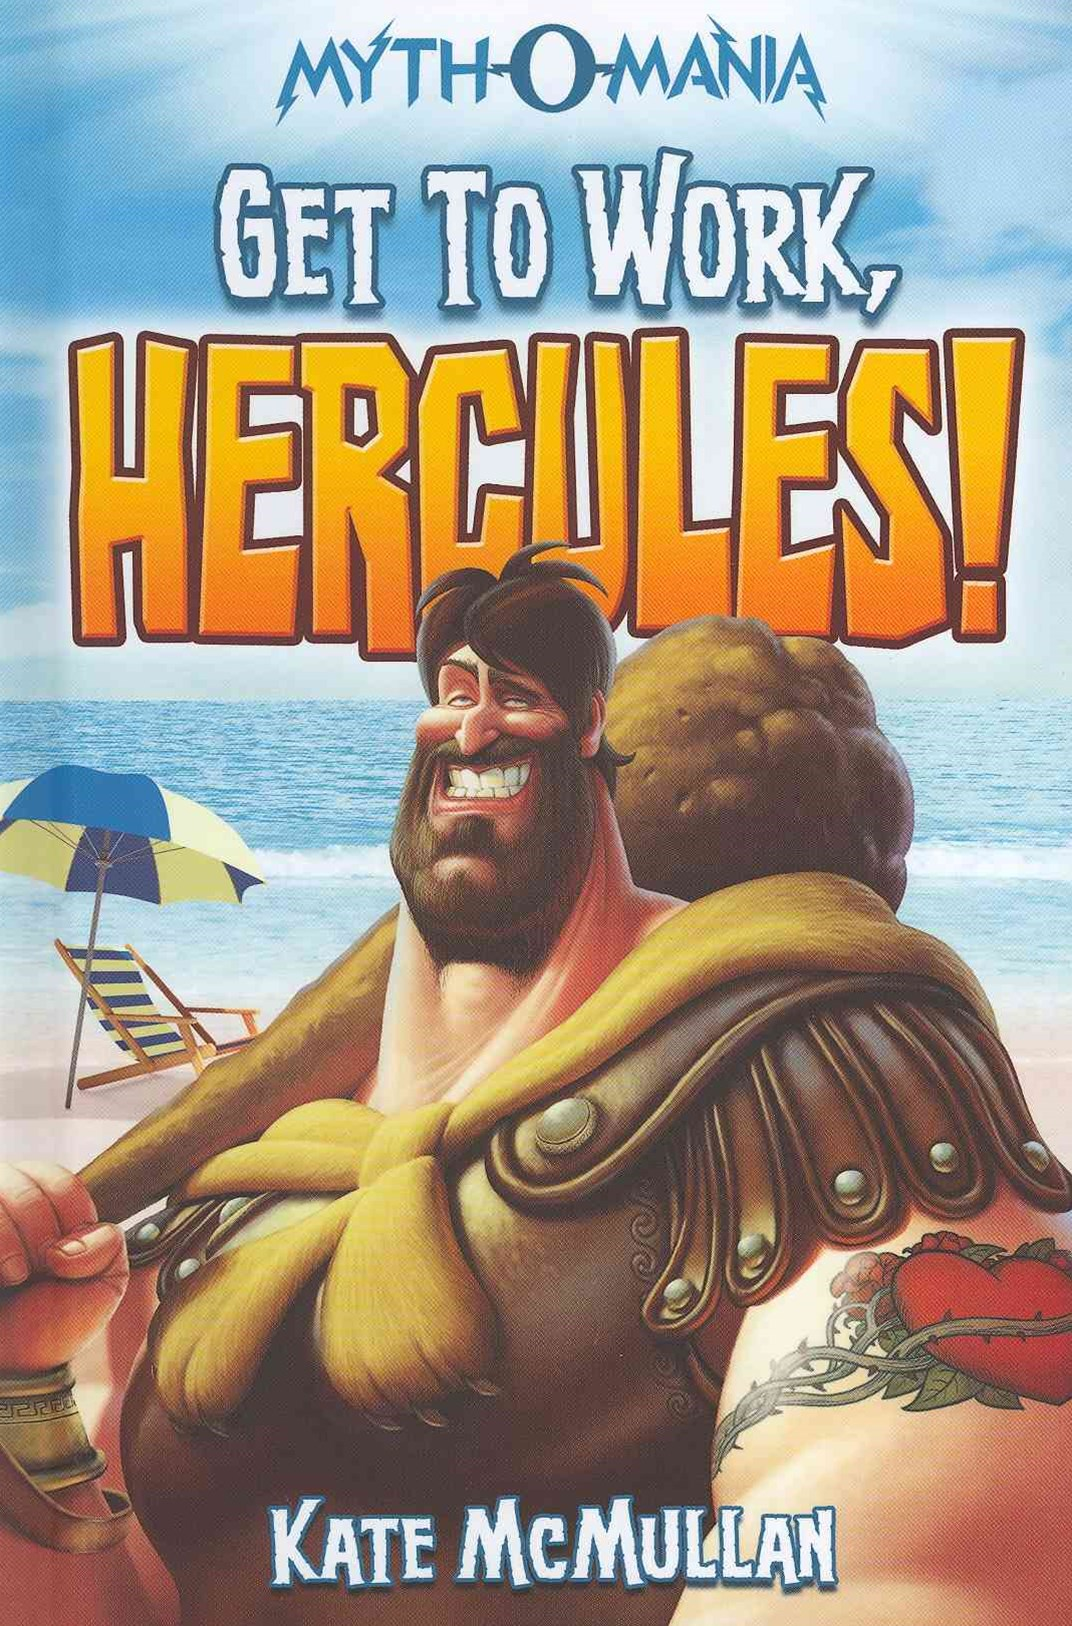 Get to Work, Hercules!